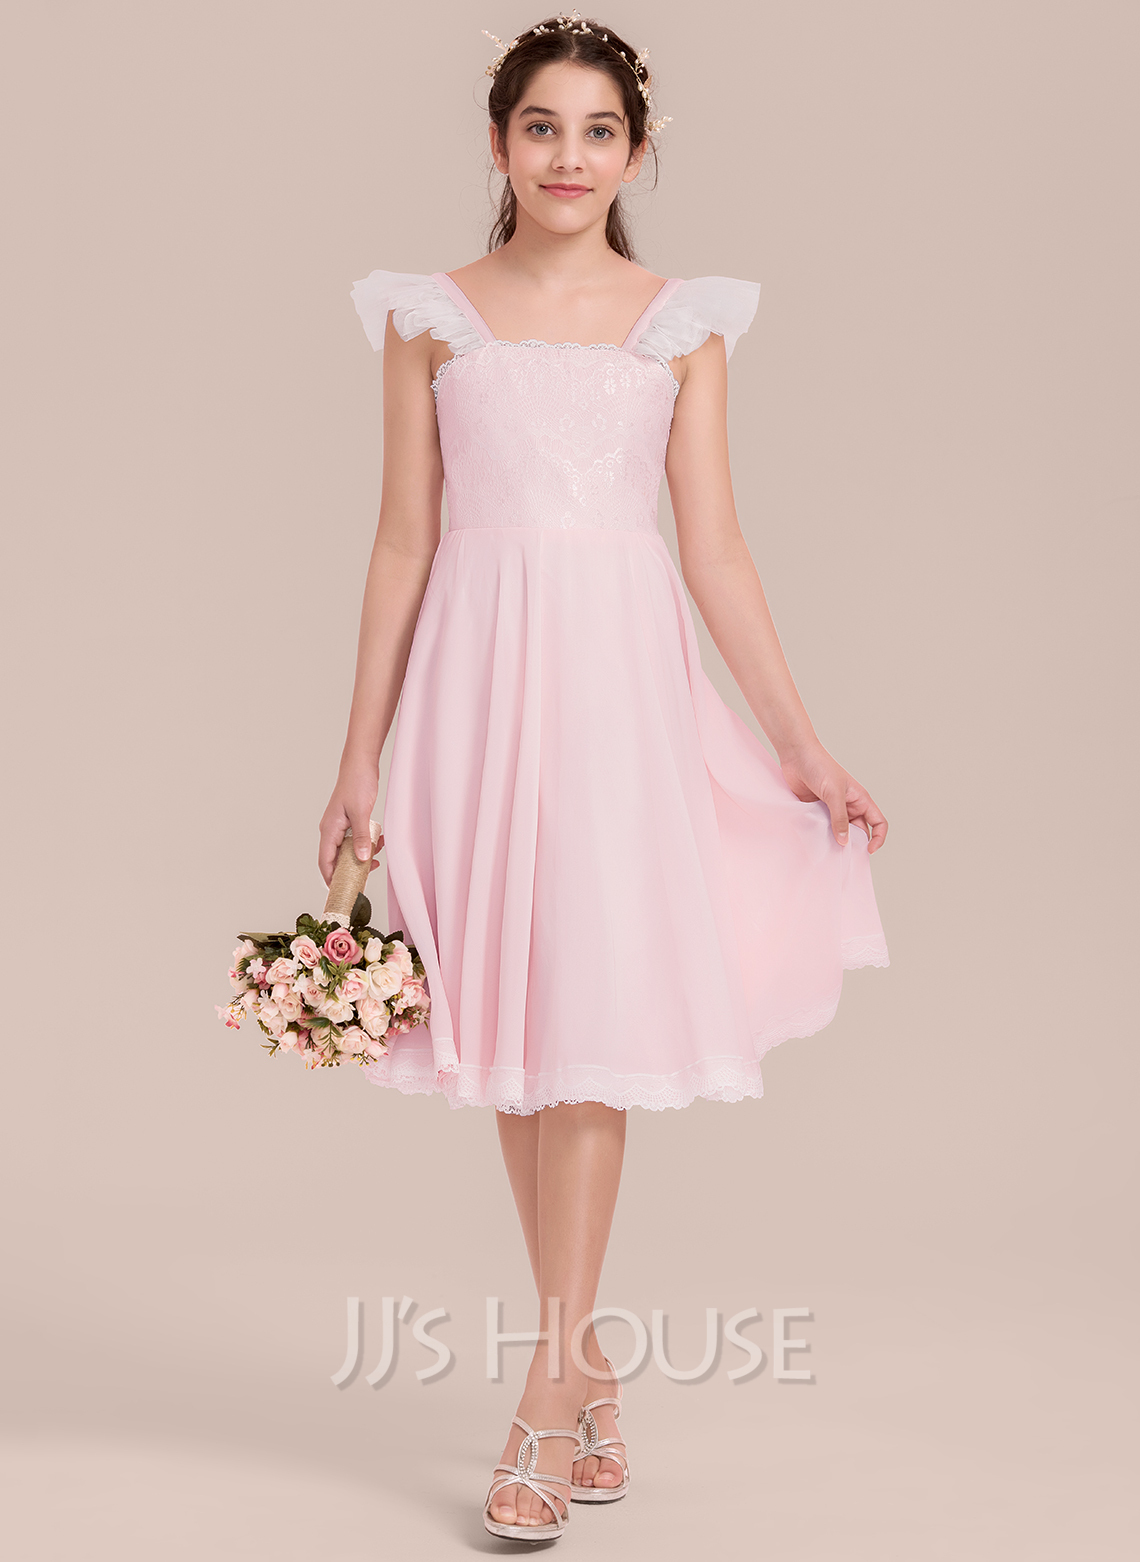 43a6970ebb0 A-Line Princess Square Neckline Knee-Length Chiffon Junior Bridesmaid Dress  With Ruffle. Loading zoom